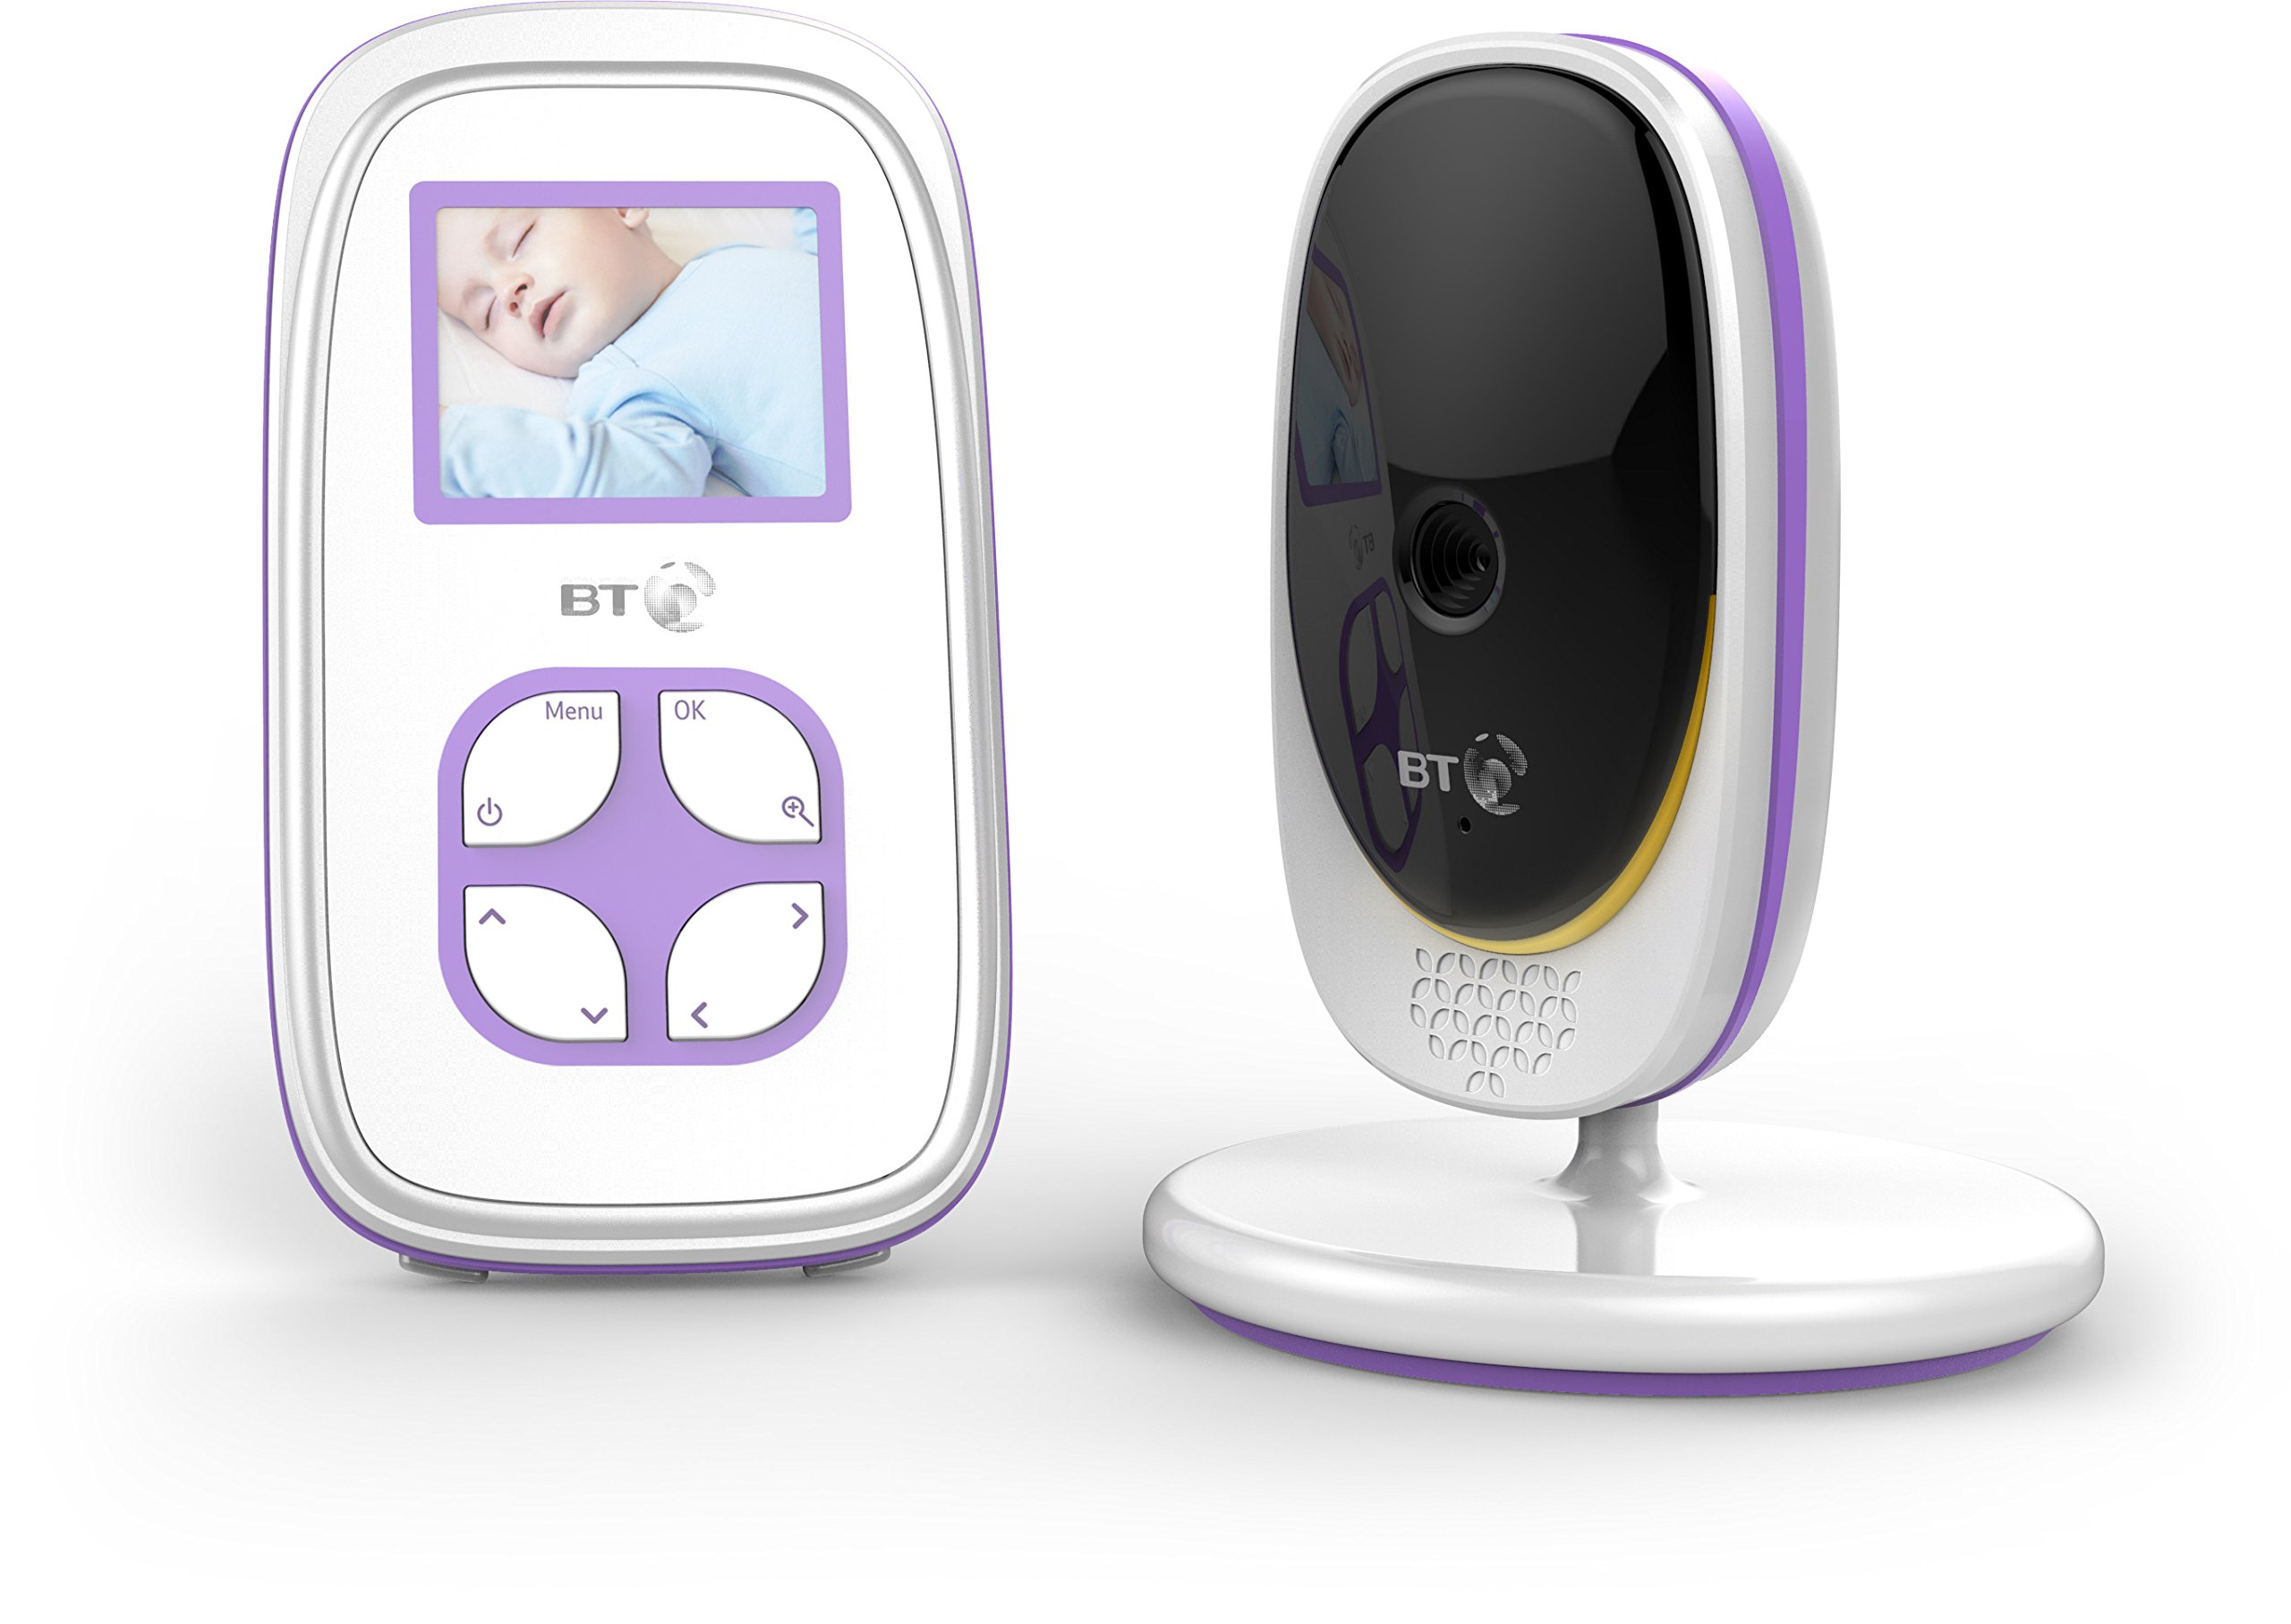 BT Video Baby Monitor 2000 BT 2 inch screen with night vision Manual (non-remote) pan/tilt mechanism Portable parent unit so you can move freely around your home 1